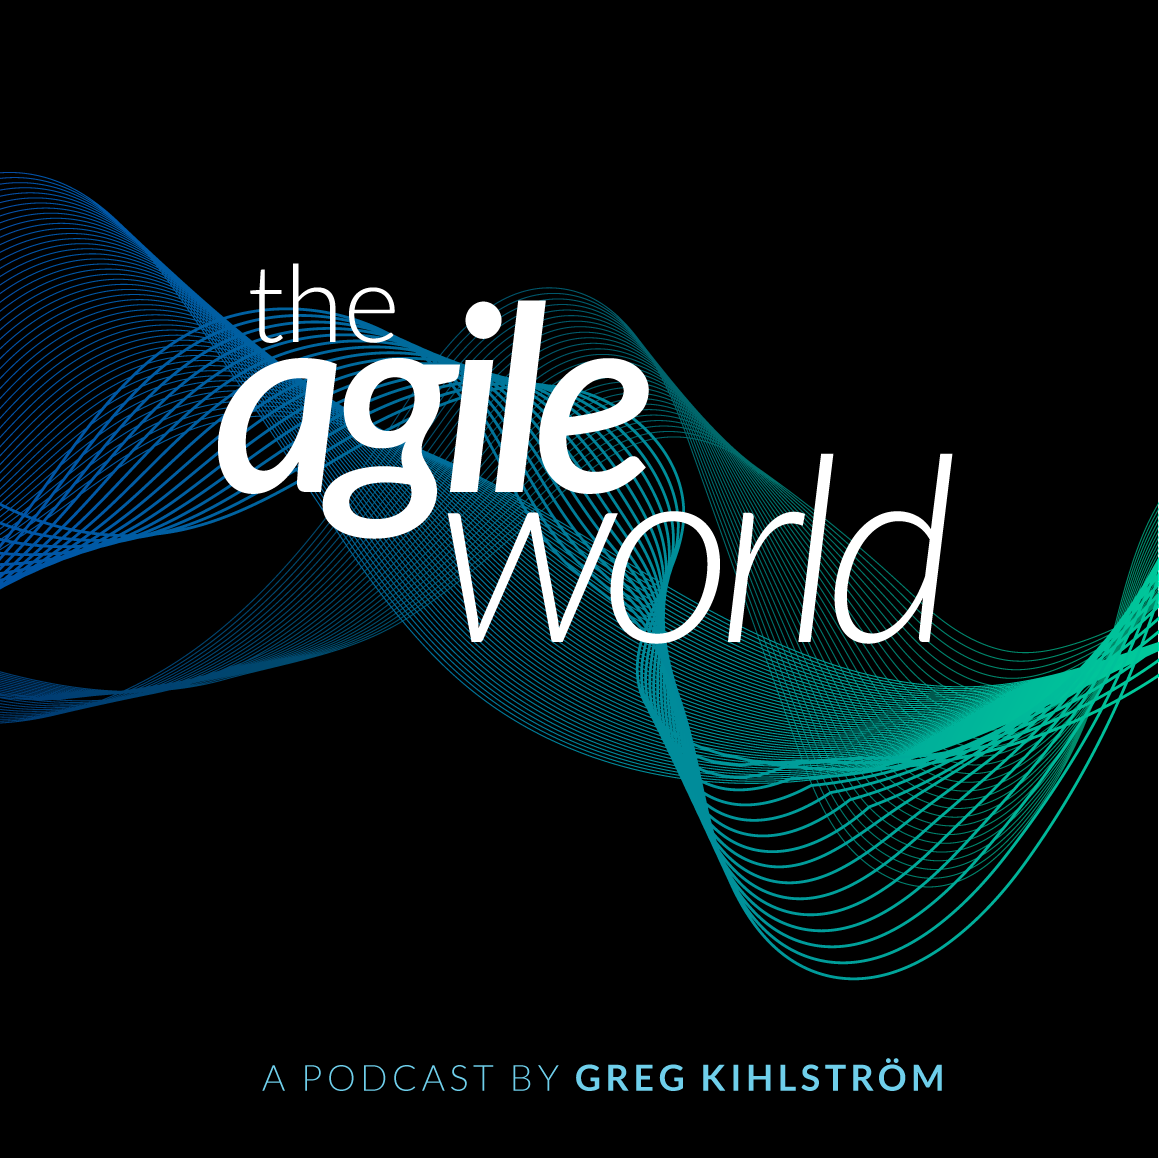 The Agile World podcast by Greg Kihlstrom